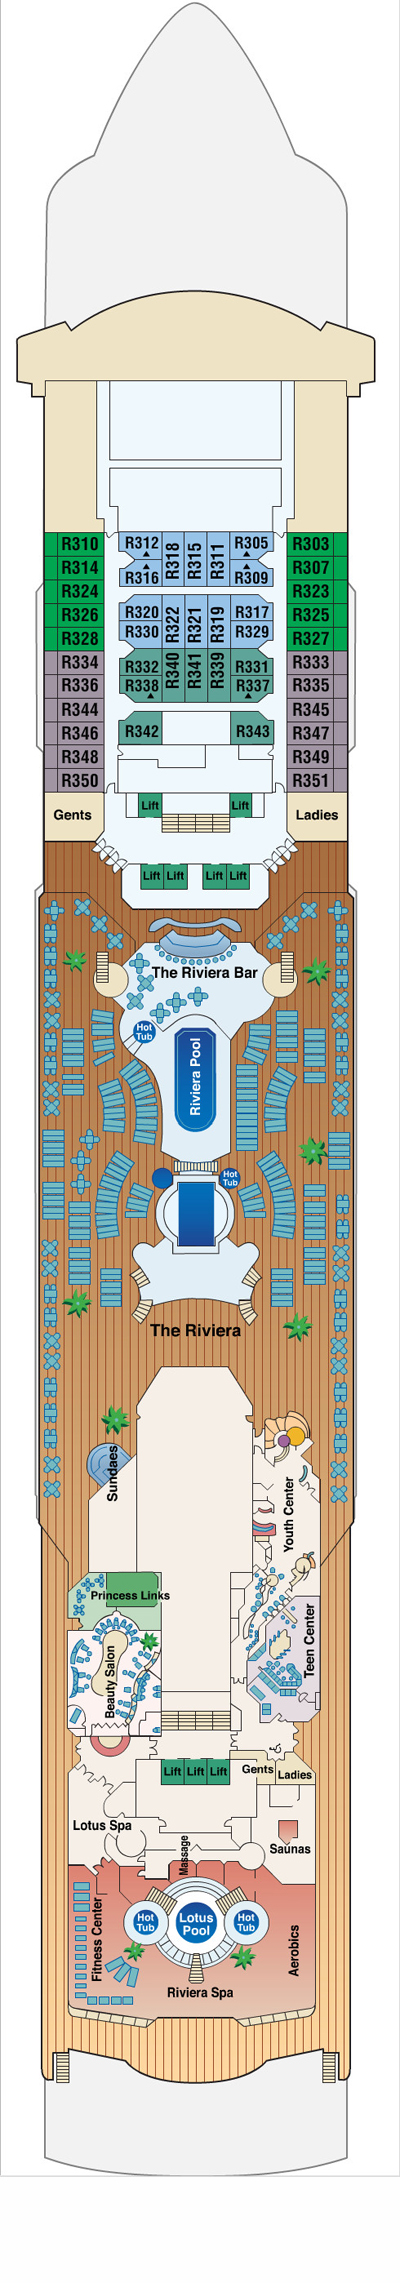 Sun Princess Riviera Deck 12 layout